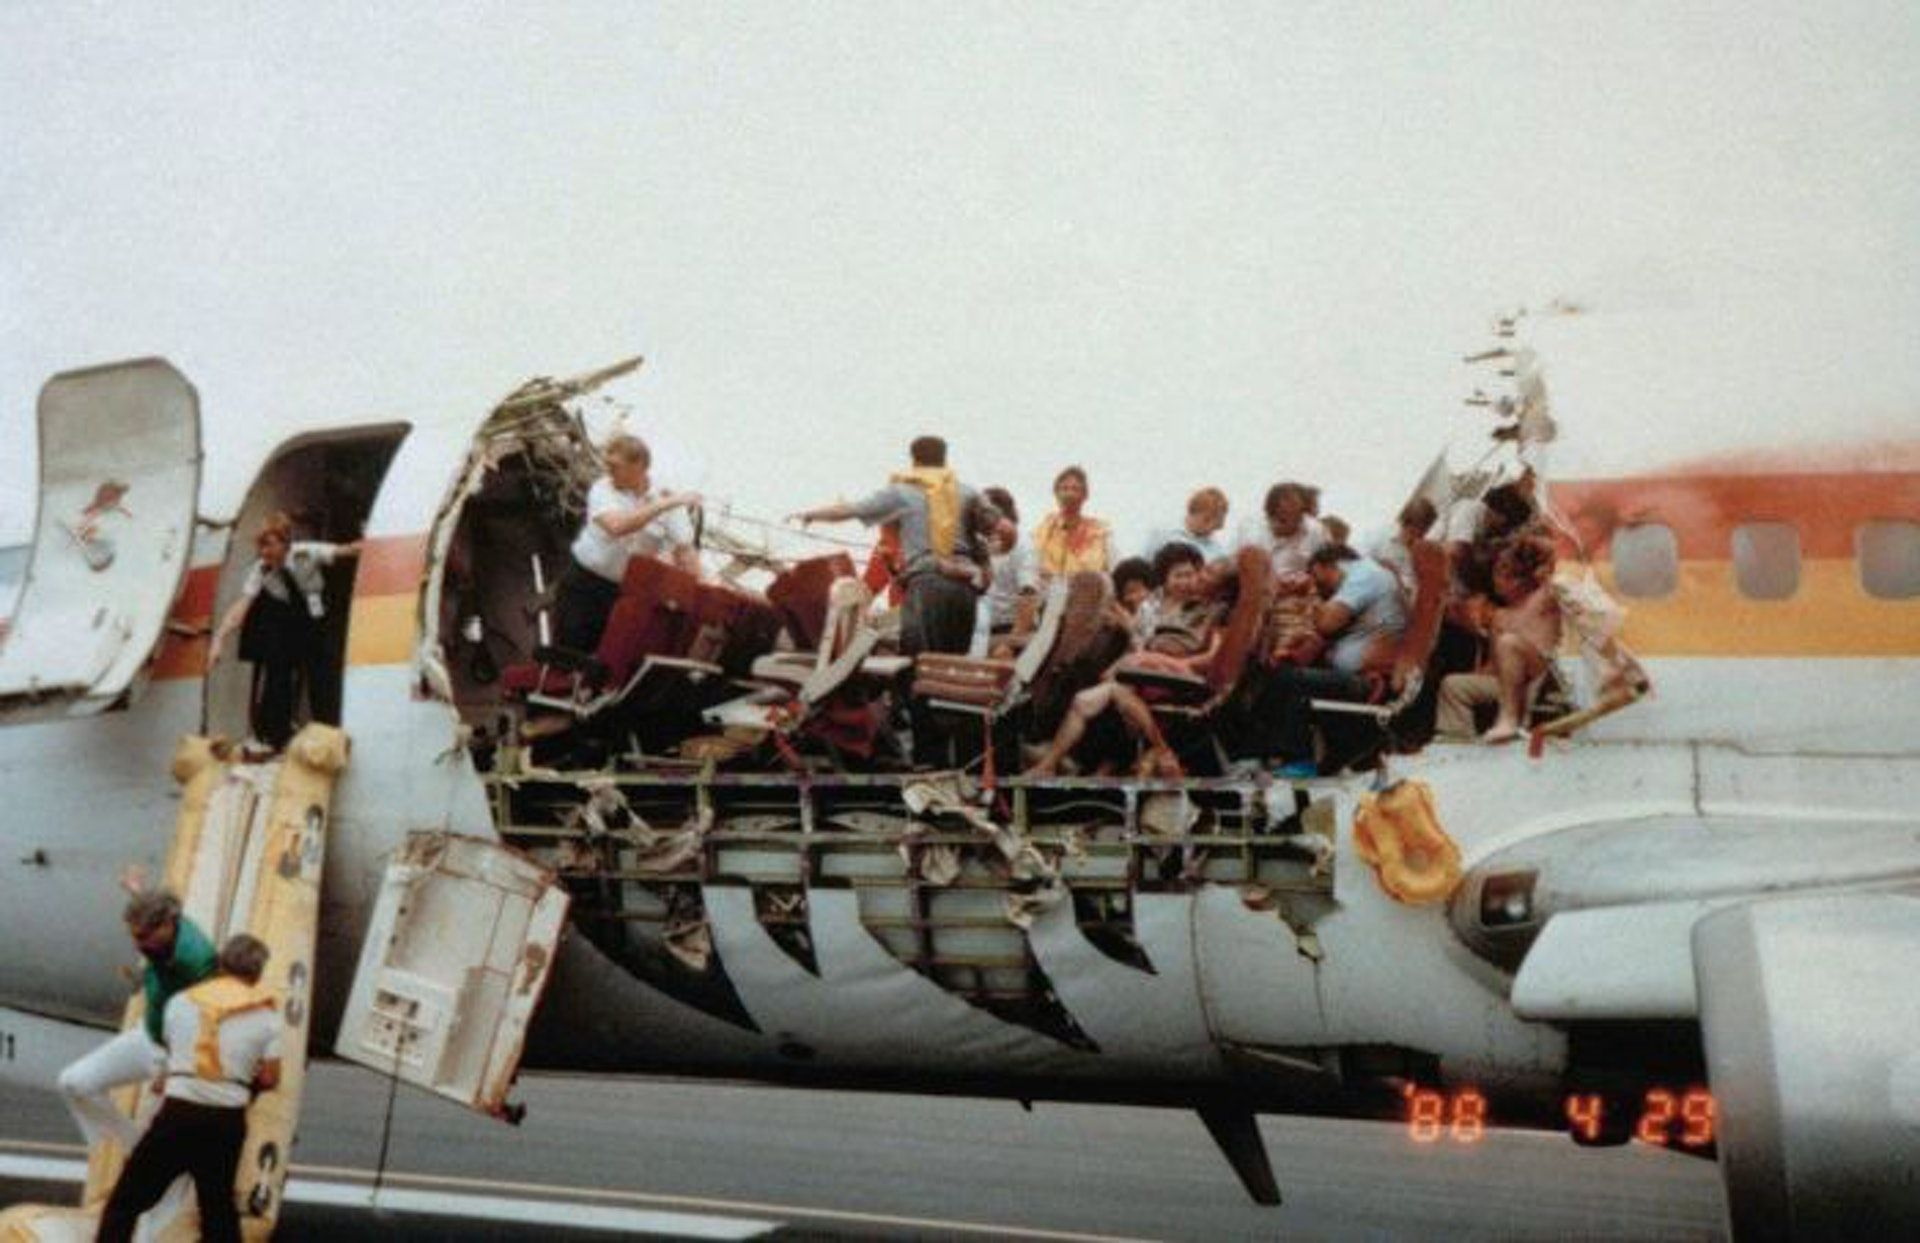 Passengers Evacuate From Aloha Airlines Flight 243 After The Plane S Roof Partially Disintegrated Due To Metal Fatigue At Aviation Accidents Airlines Aviation